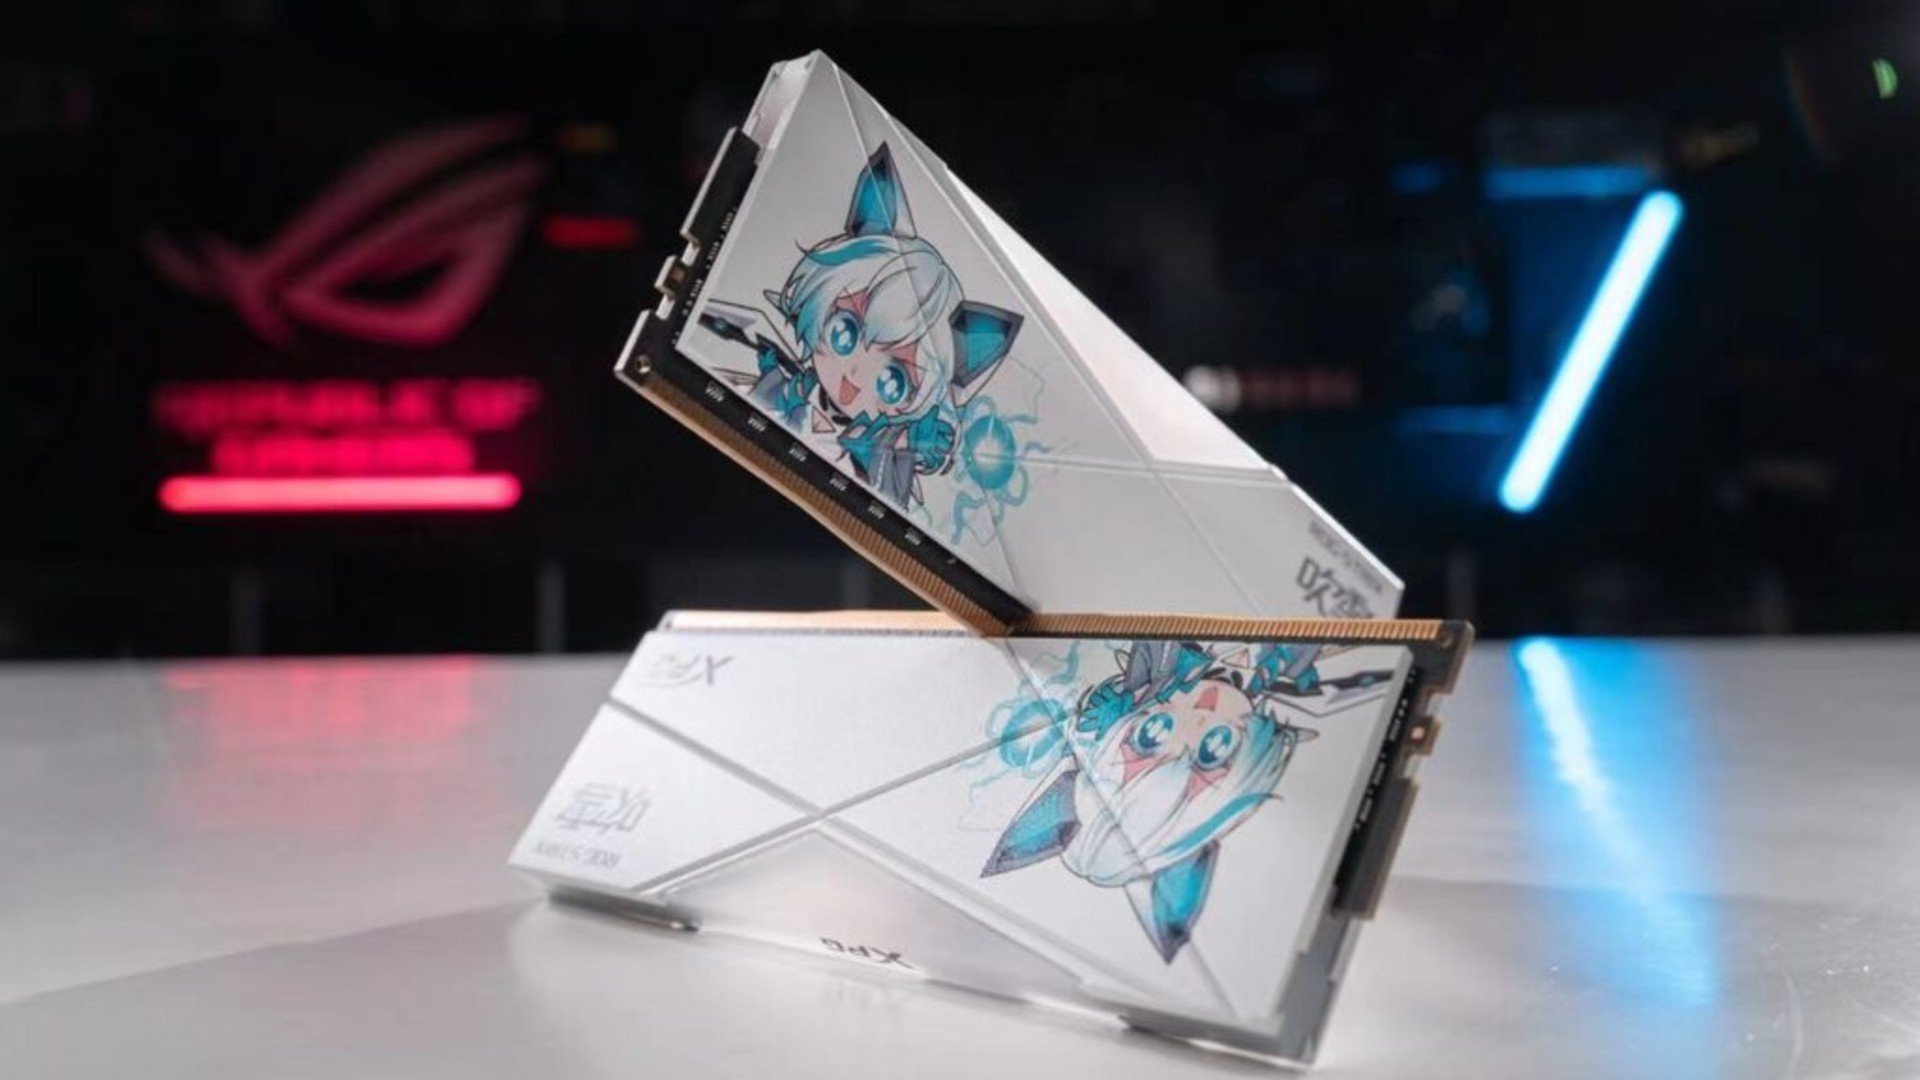 Teamgroup releases new DDR5 RAM, while Asus and XPG go full anime with DDR4